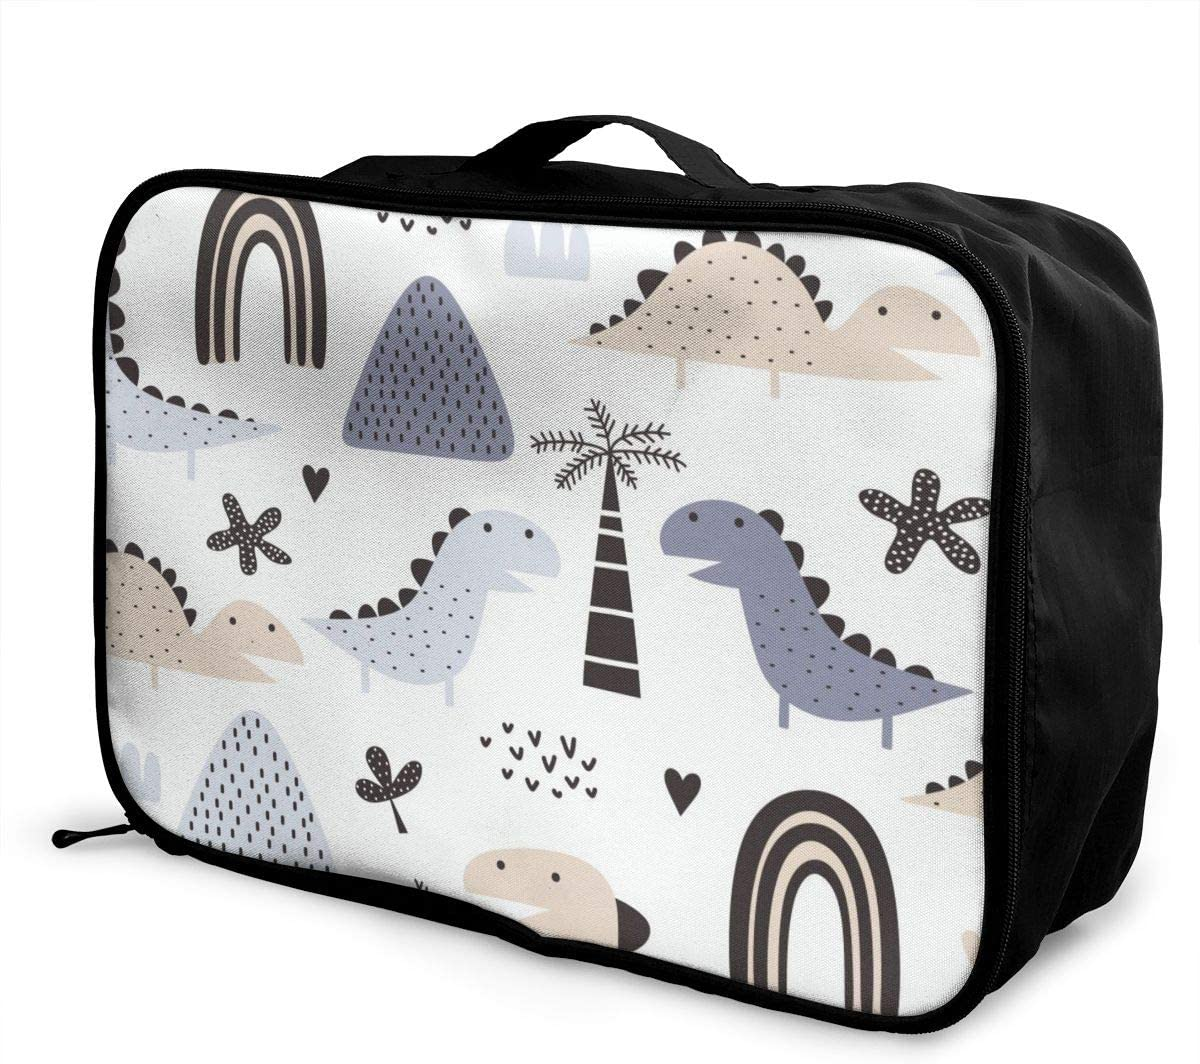 Scandinavian Style Dinosaur And Pastel Colored Lightweight LargeTravel Storage Luggage Trolley Bag Travel Duffel Bags Carry-On Tote